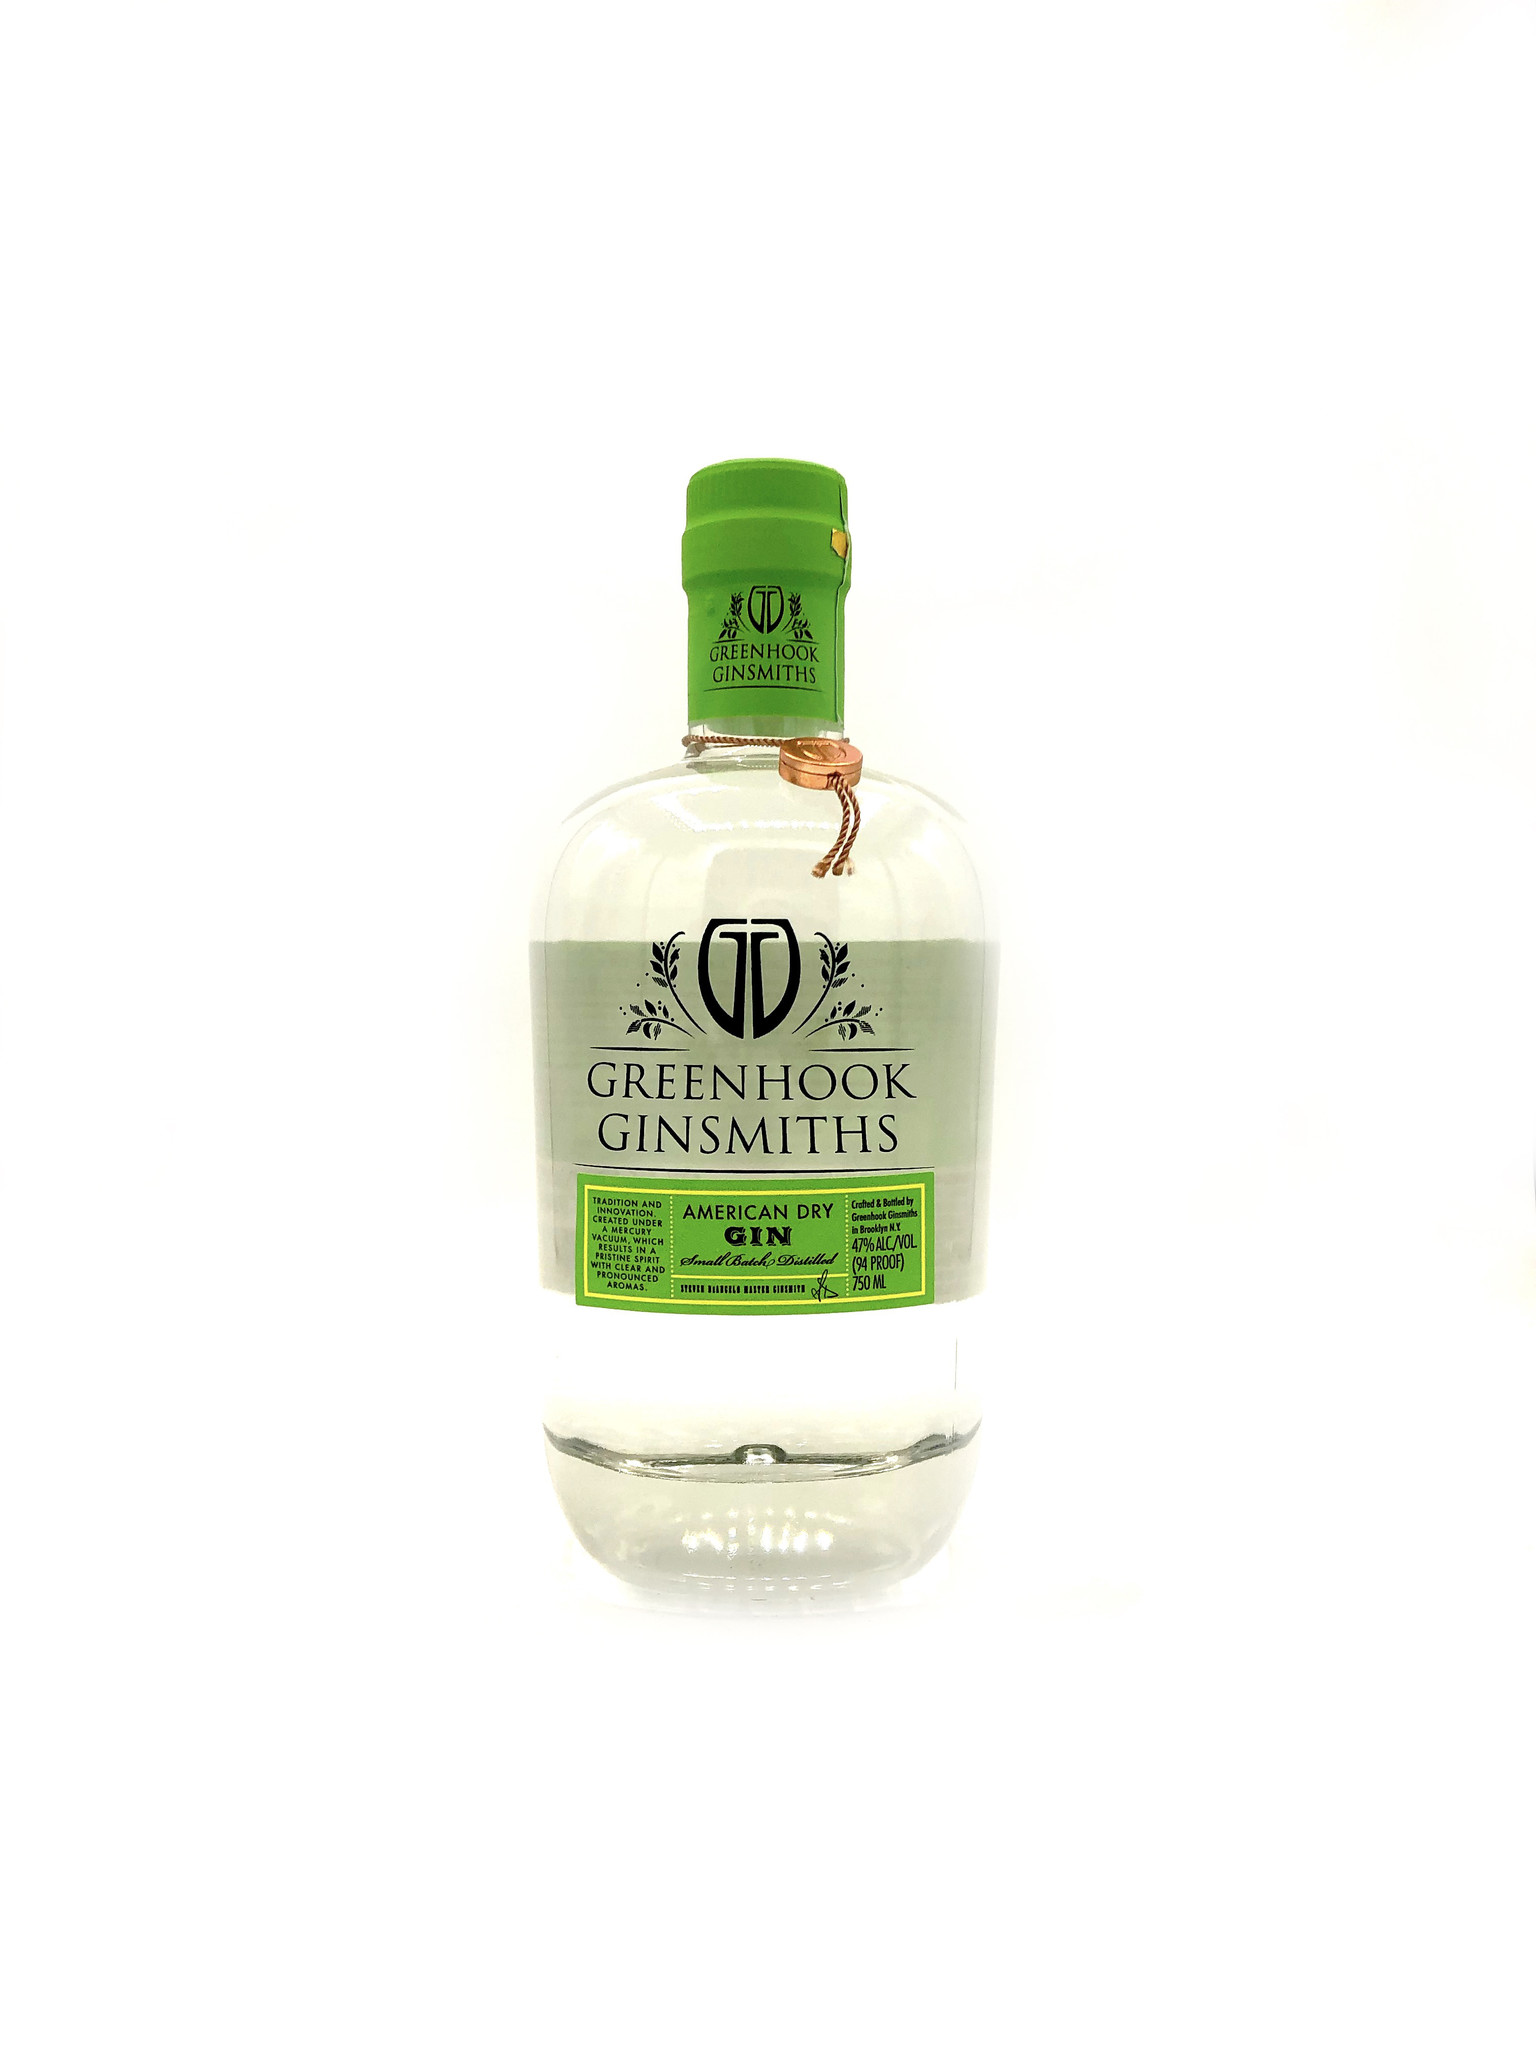 Greenhook Ginsmiths American Dry Gin